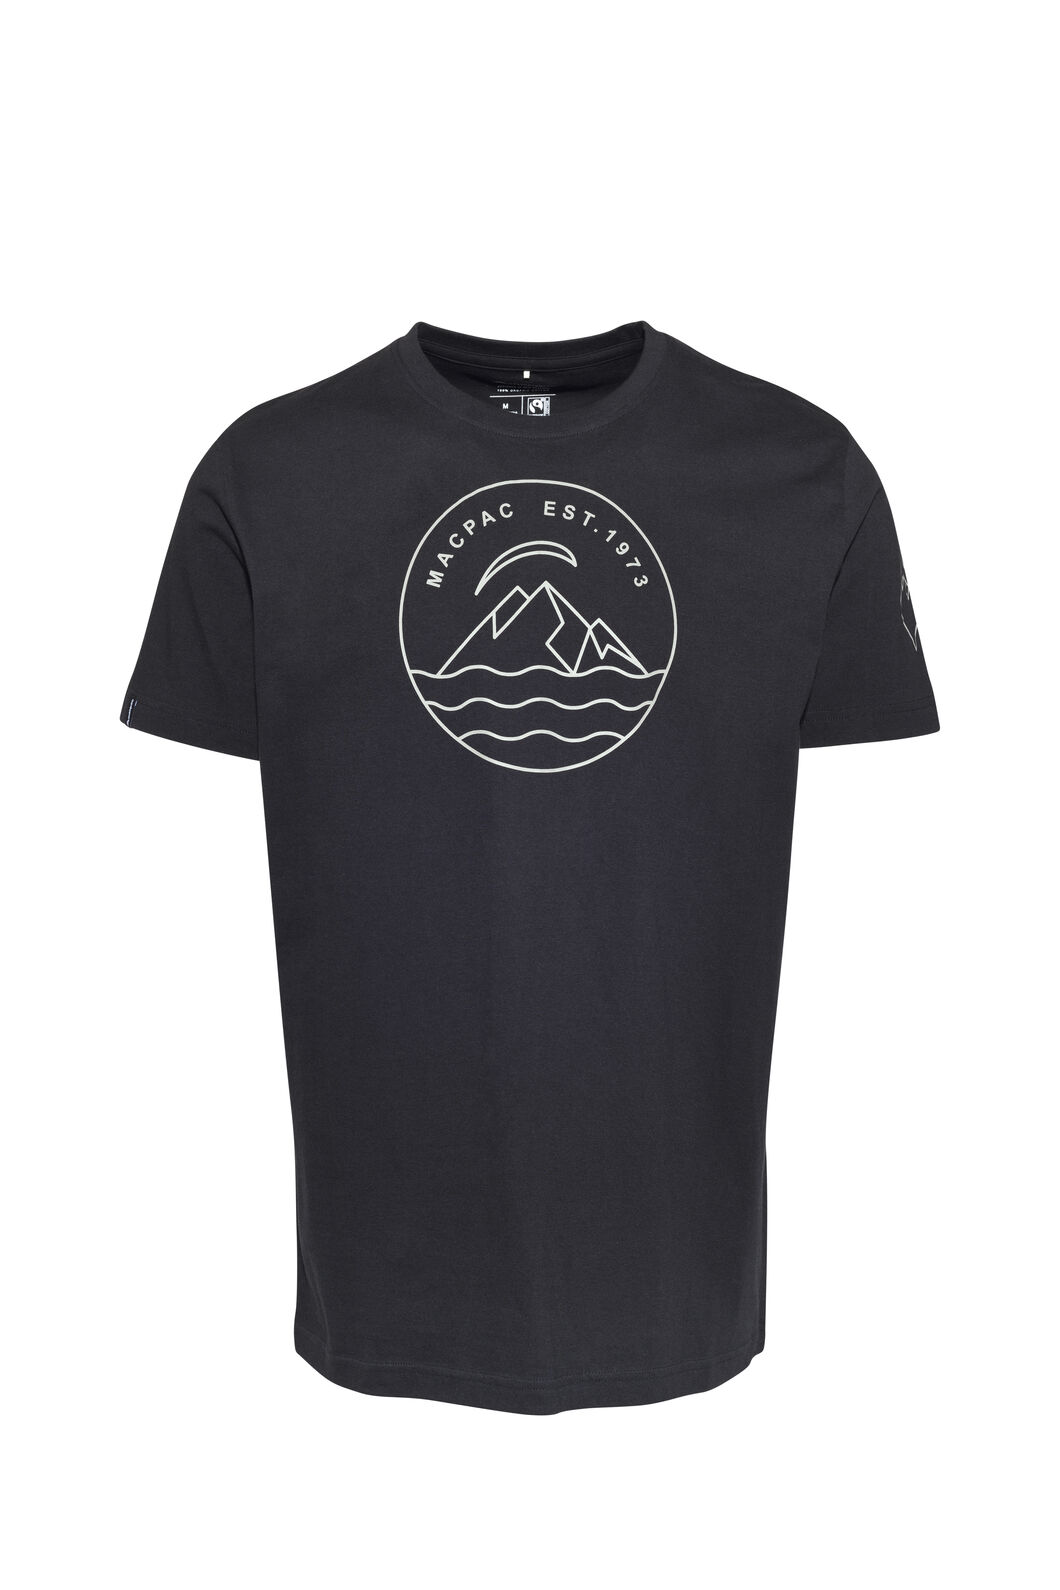 Macpac EST 1973 Fairtrade Organic Cotton Tee — Men's, Black/Vetiver, hi-res